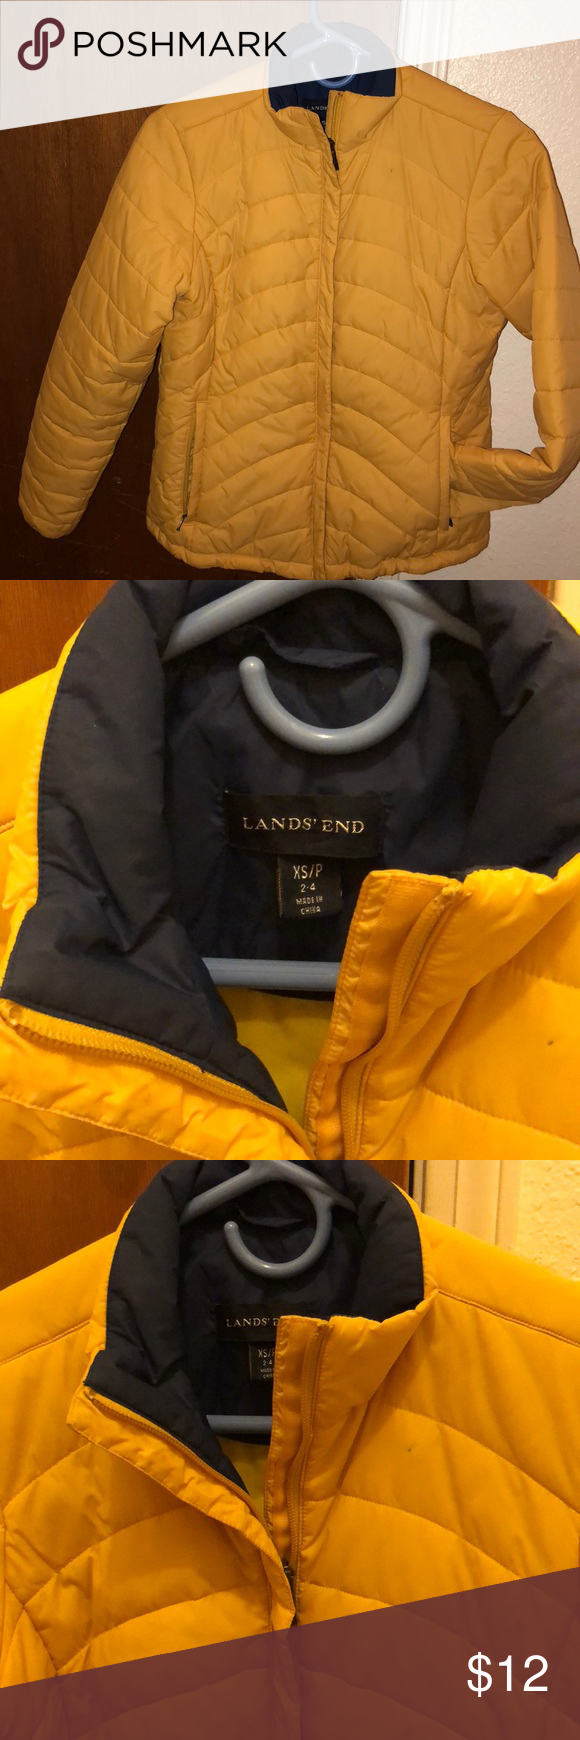 Bright And Cozy Puffer Jacket Jackets Puffer Jackets Clothes Design [ 1740 x 580 Pixel ]